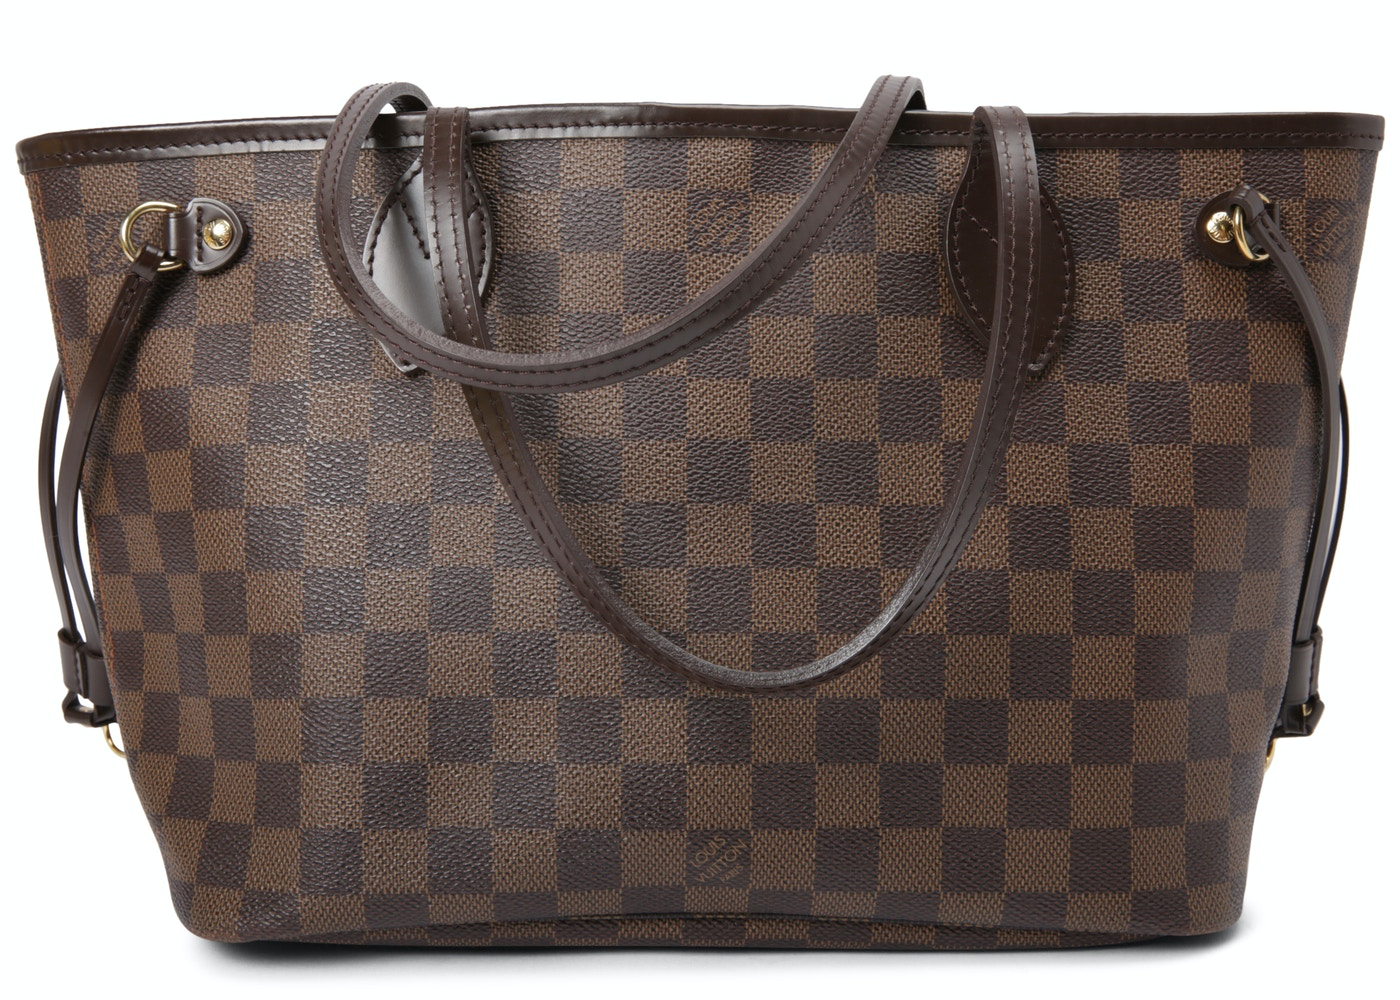 d416bb35ccb Louis Vuitton Neverfull Damier Ebene (Without Pouch) PM Cerise Lining